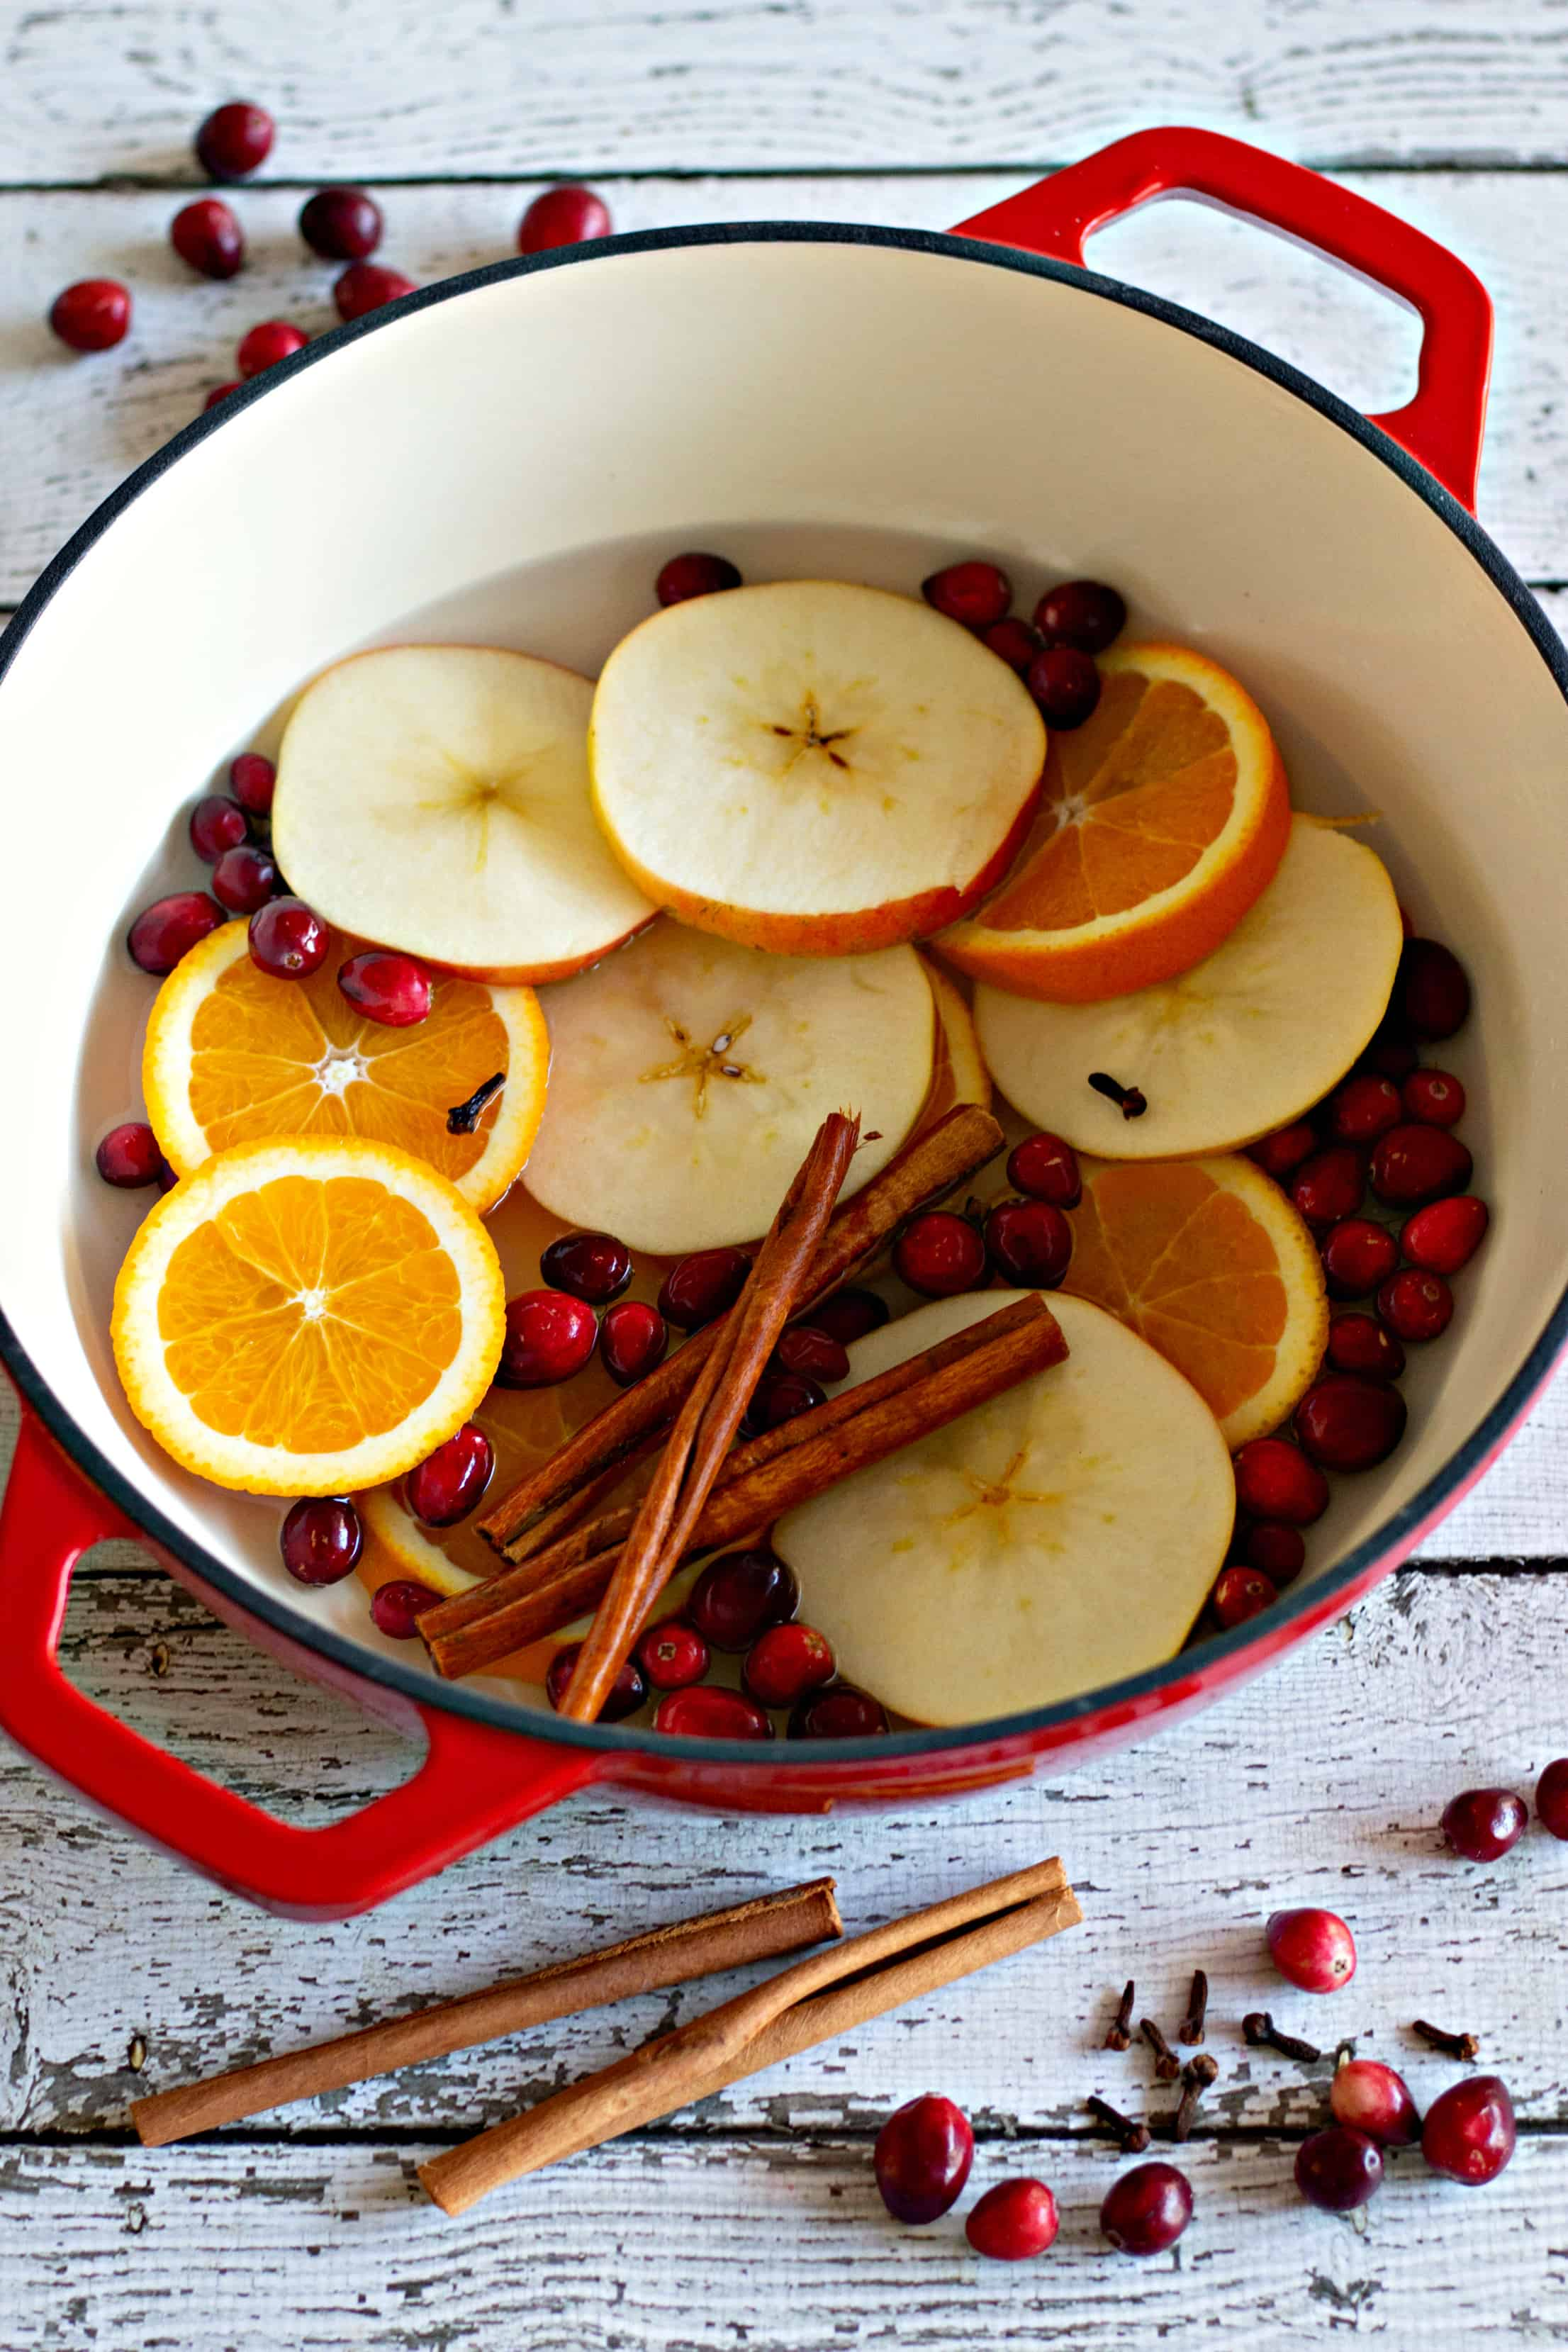 16 Simmer Pot Recipes for All Seasons – Homemade Simmering Potpourri